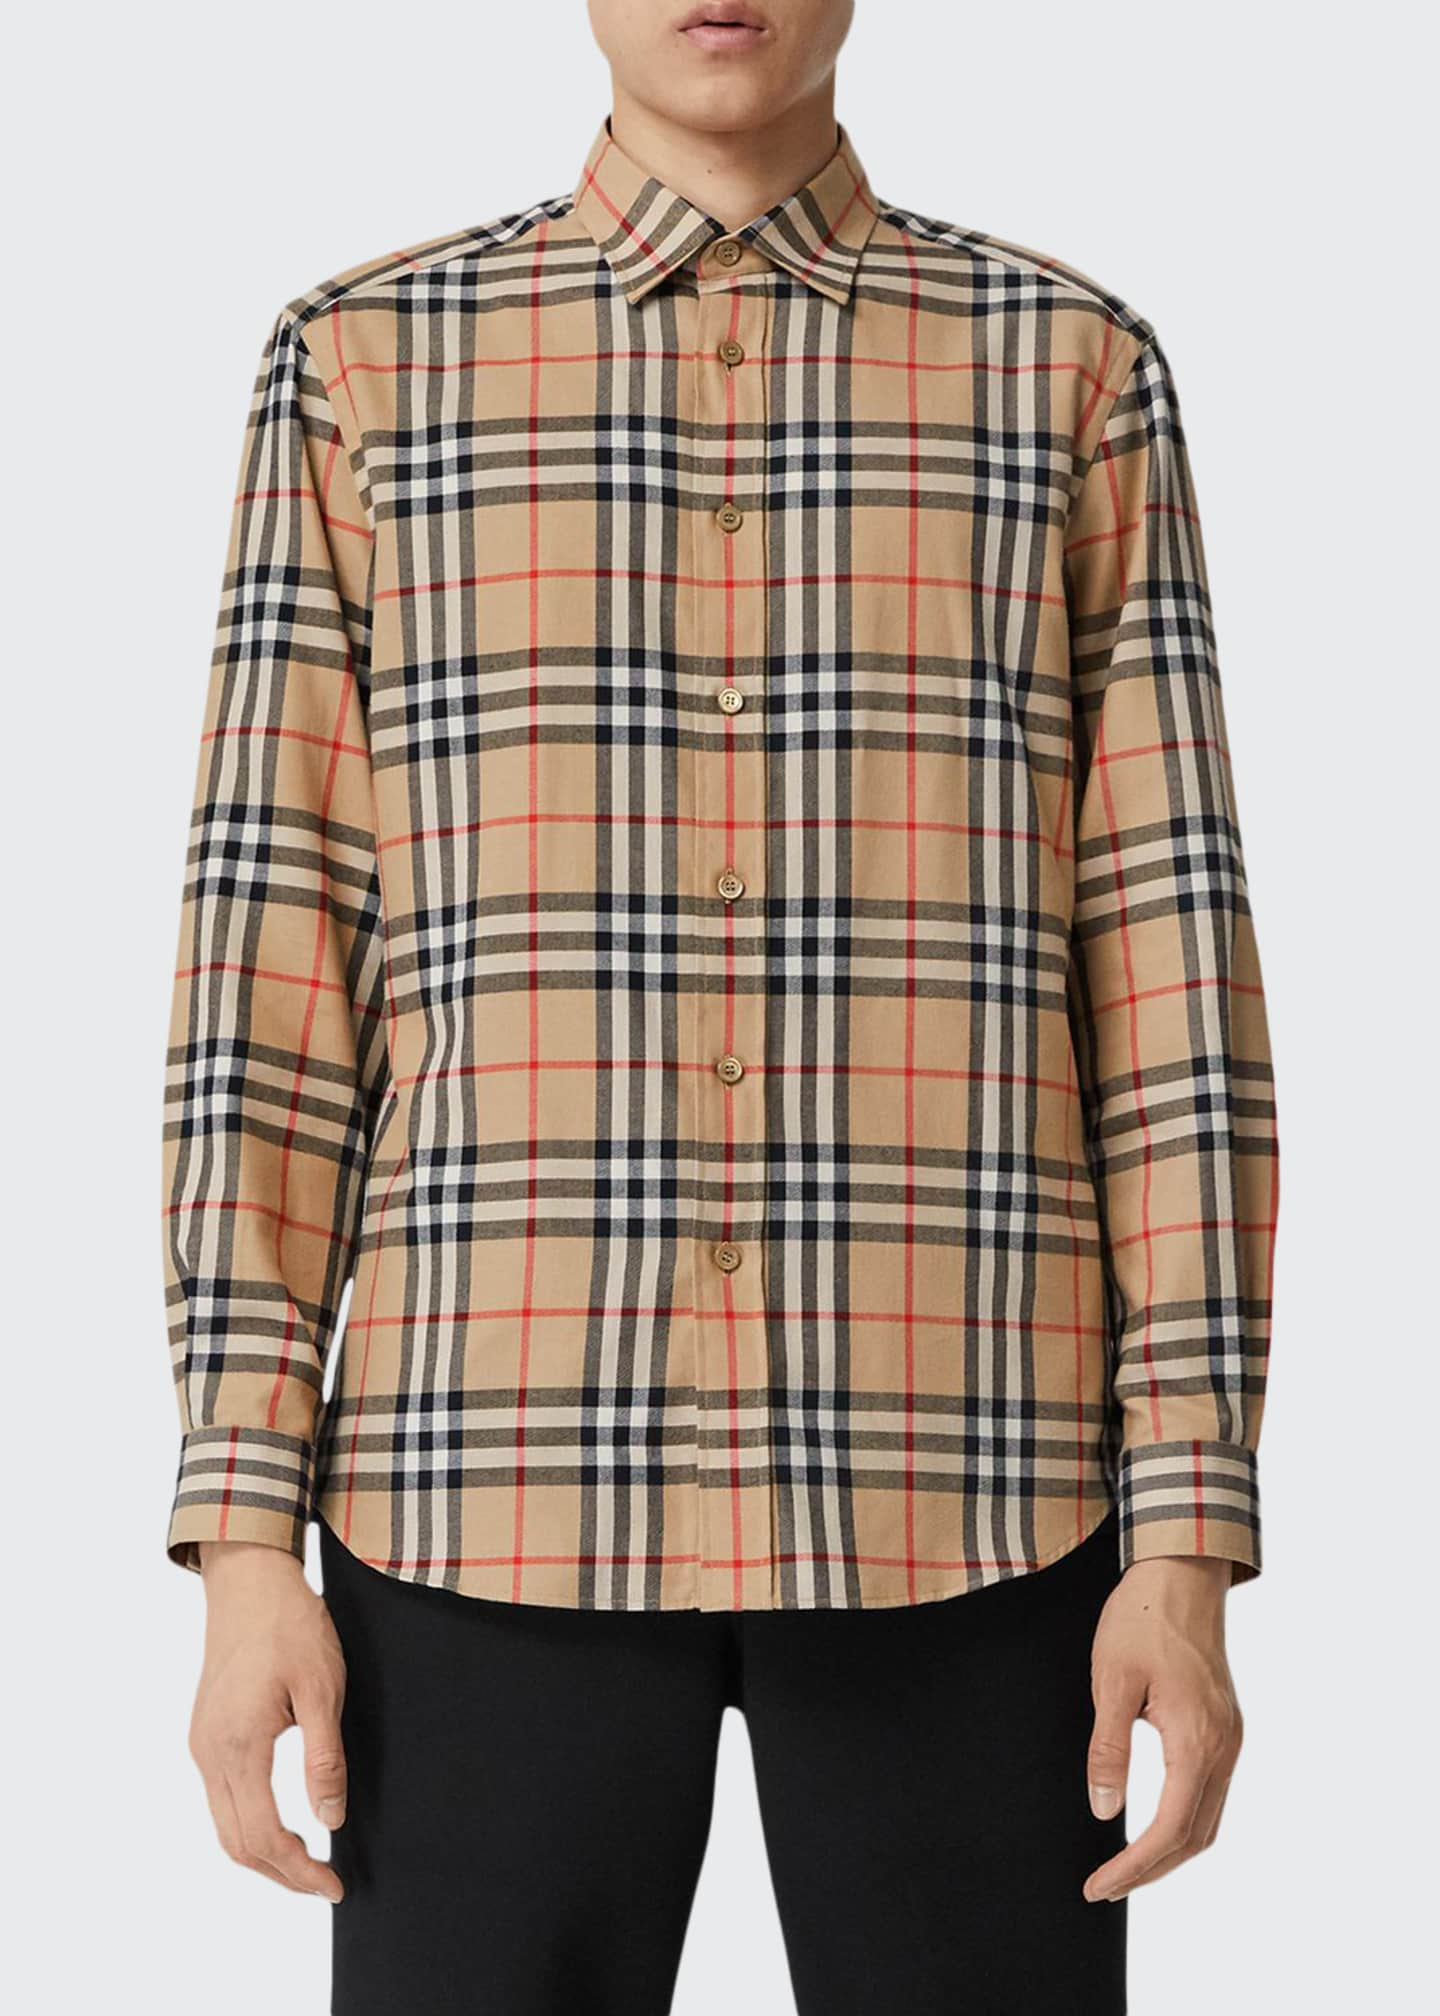 Burberry Men's Chambers Check Flannel Sport Shirt, Beige